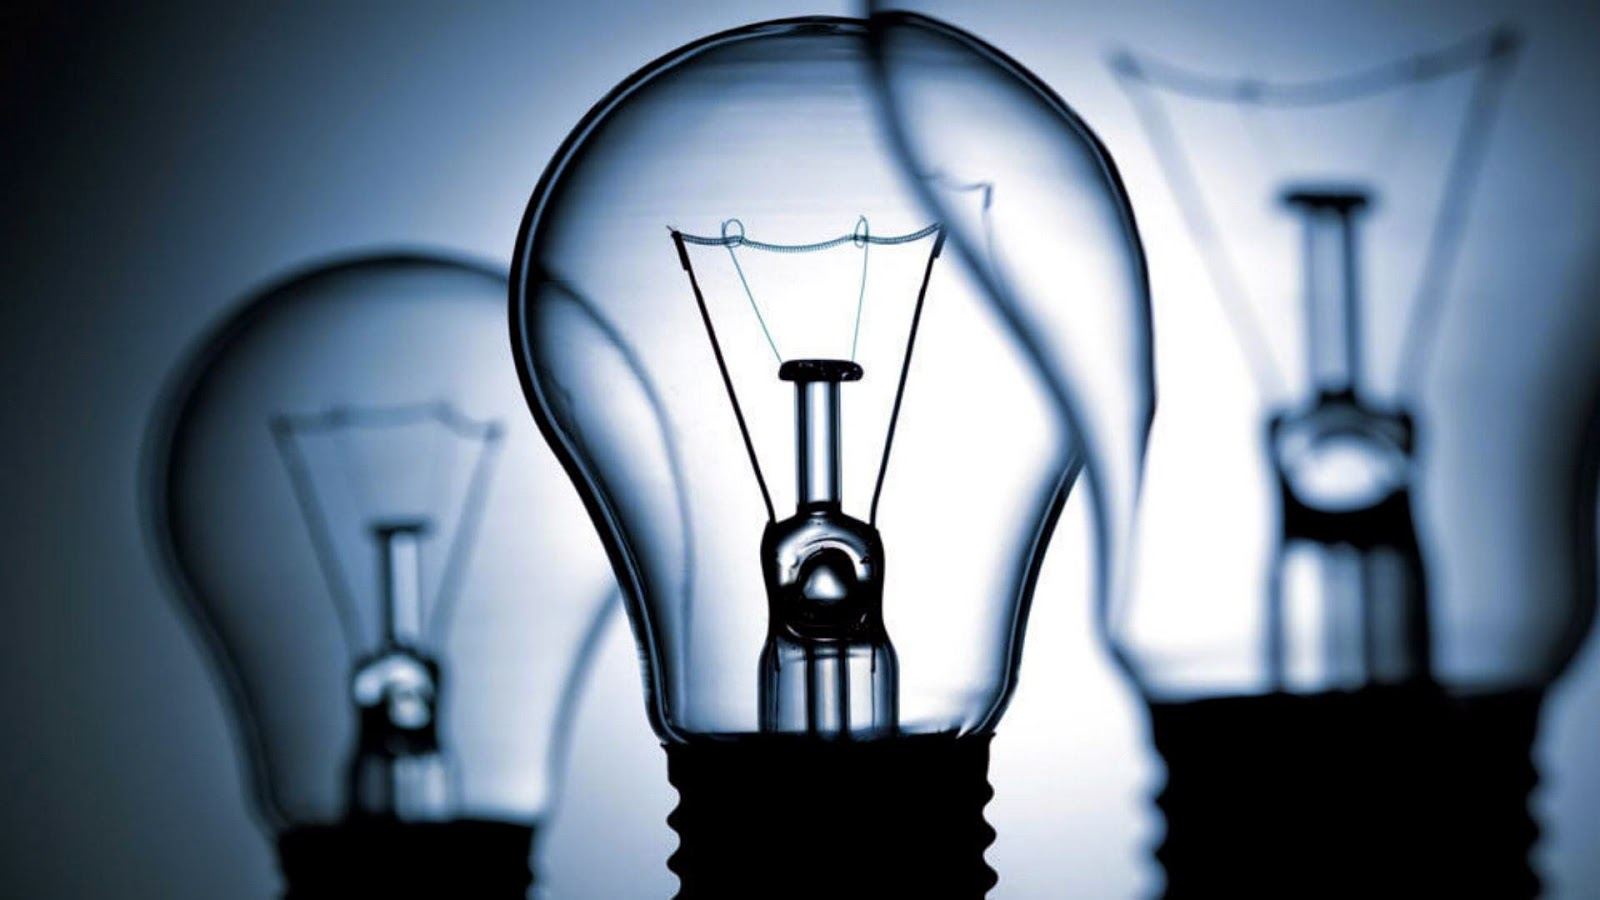 Science online uses of light bulbs and their structure A light bulb